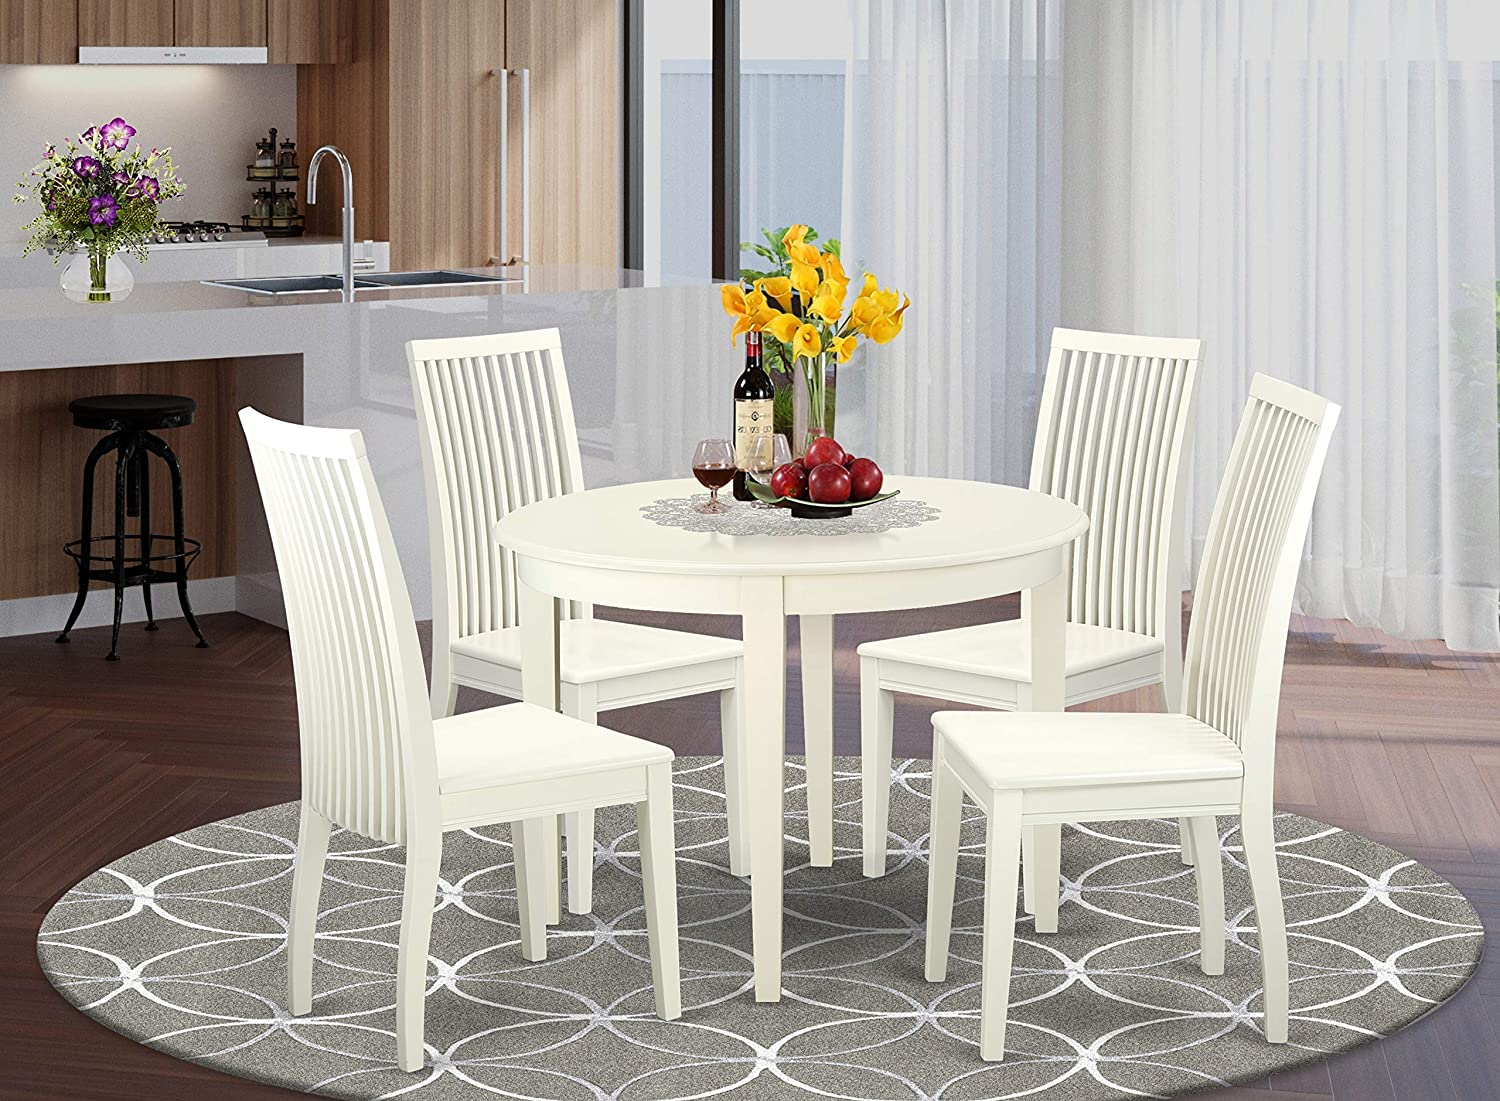 East West Furniture Dining Room Table Set 5 ☆ very popular - Din Wooden Max 73% OFF 5 Wood Pc